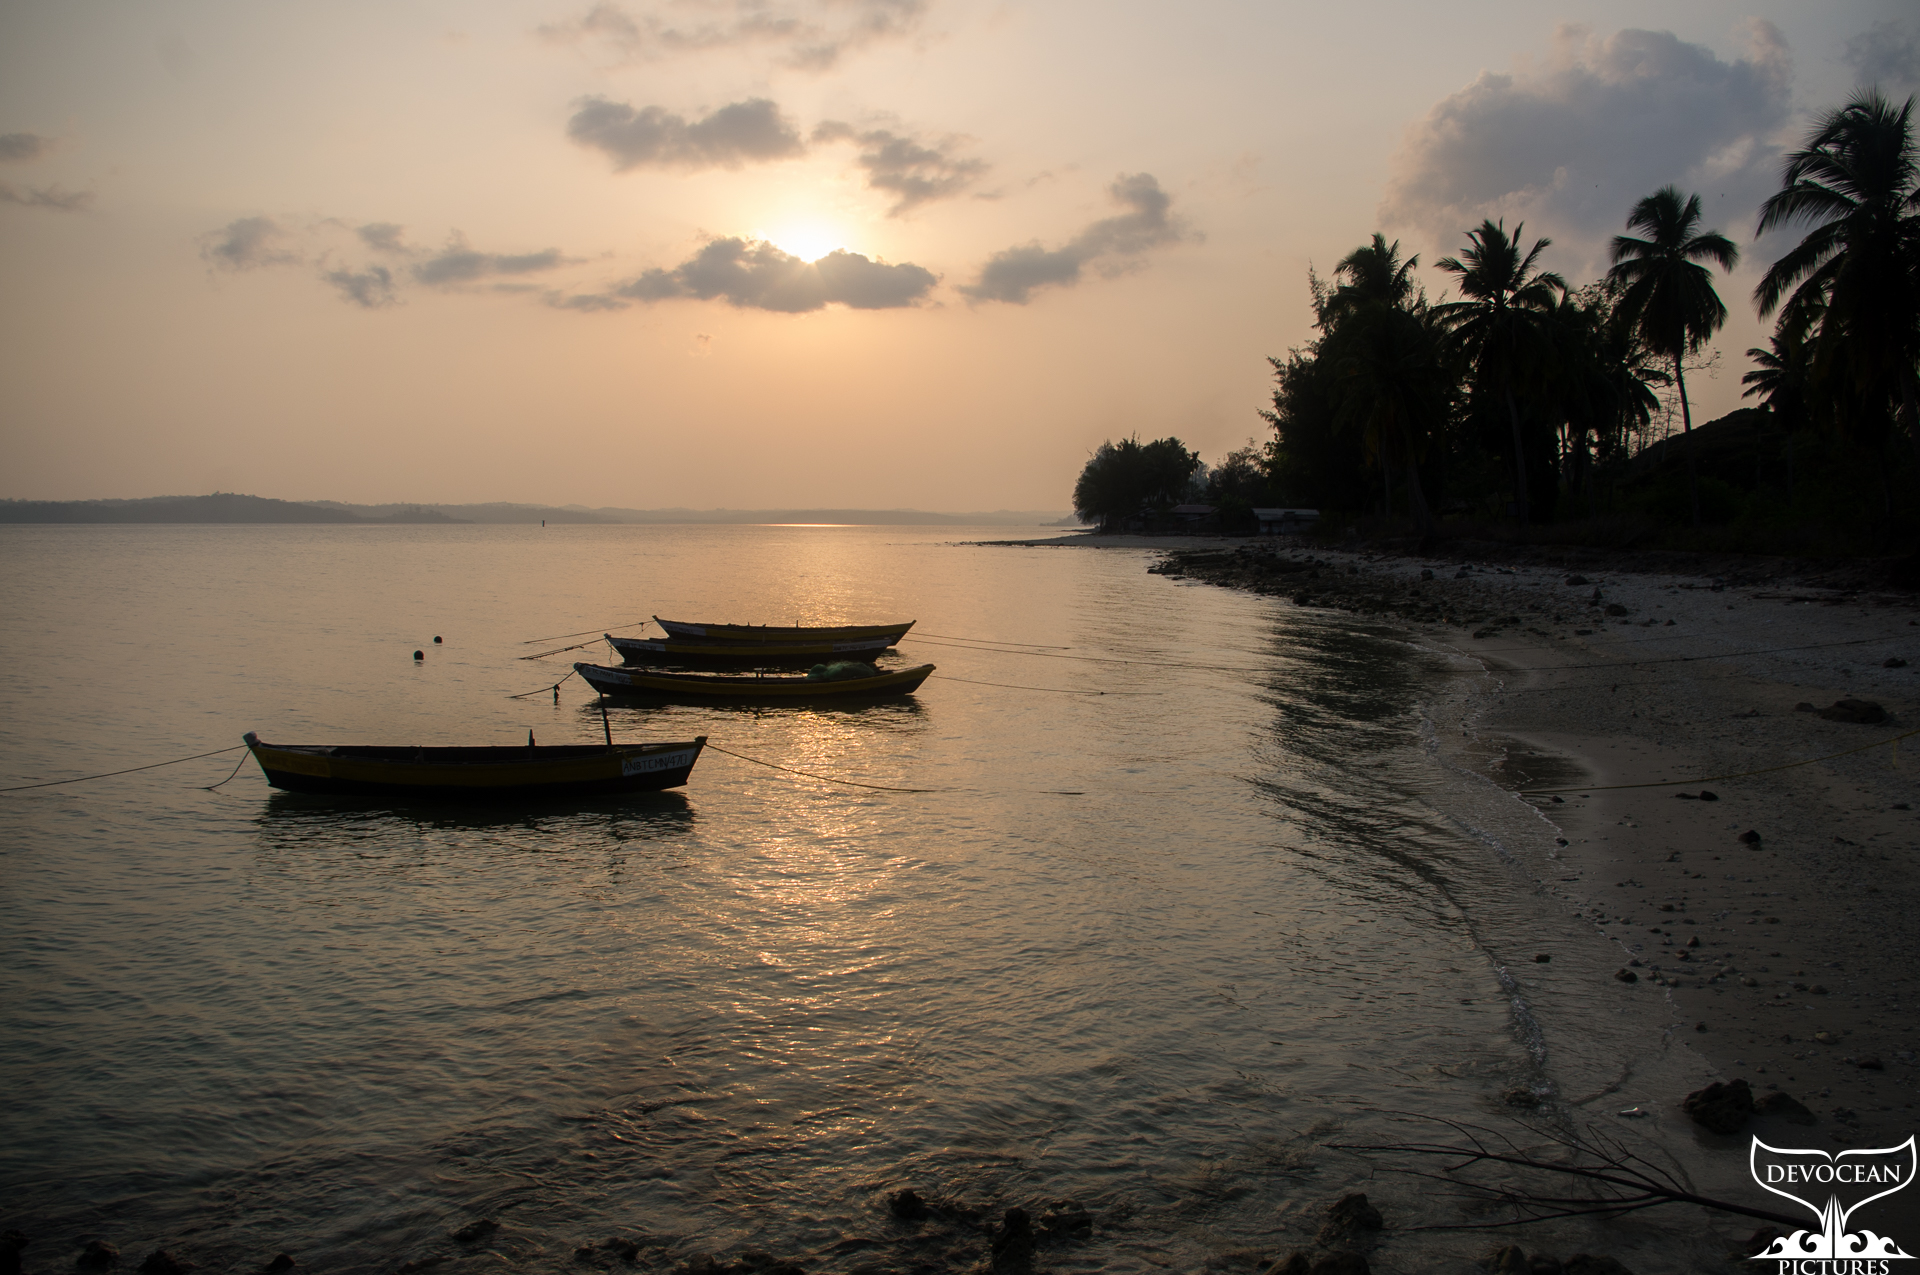 Sunset at South Beach on Long Island, Andamans, India: Three dungees are in the calm and shallow water in front of the beach that curves around with Silhouttes of trees and palms against mild orange yellow sky